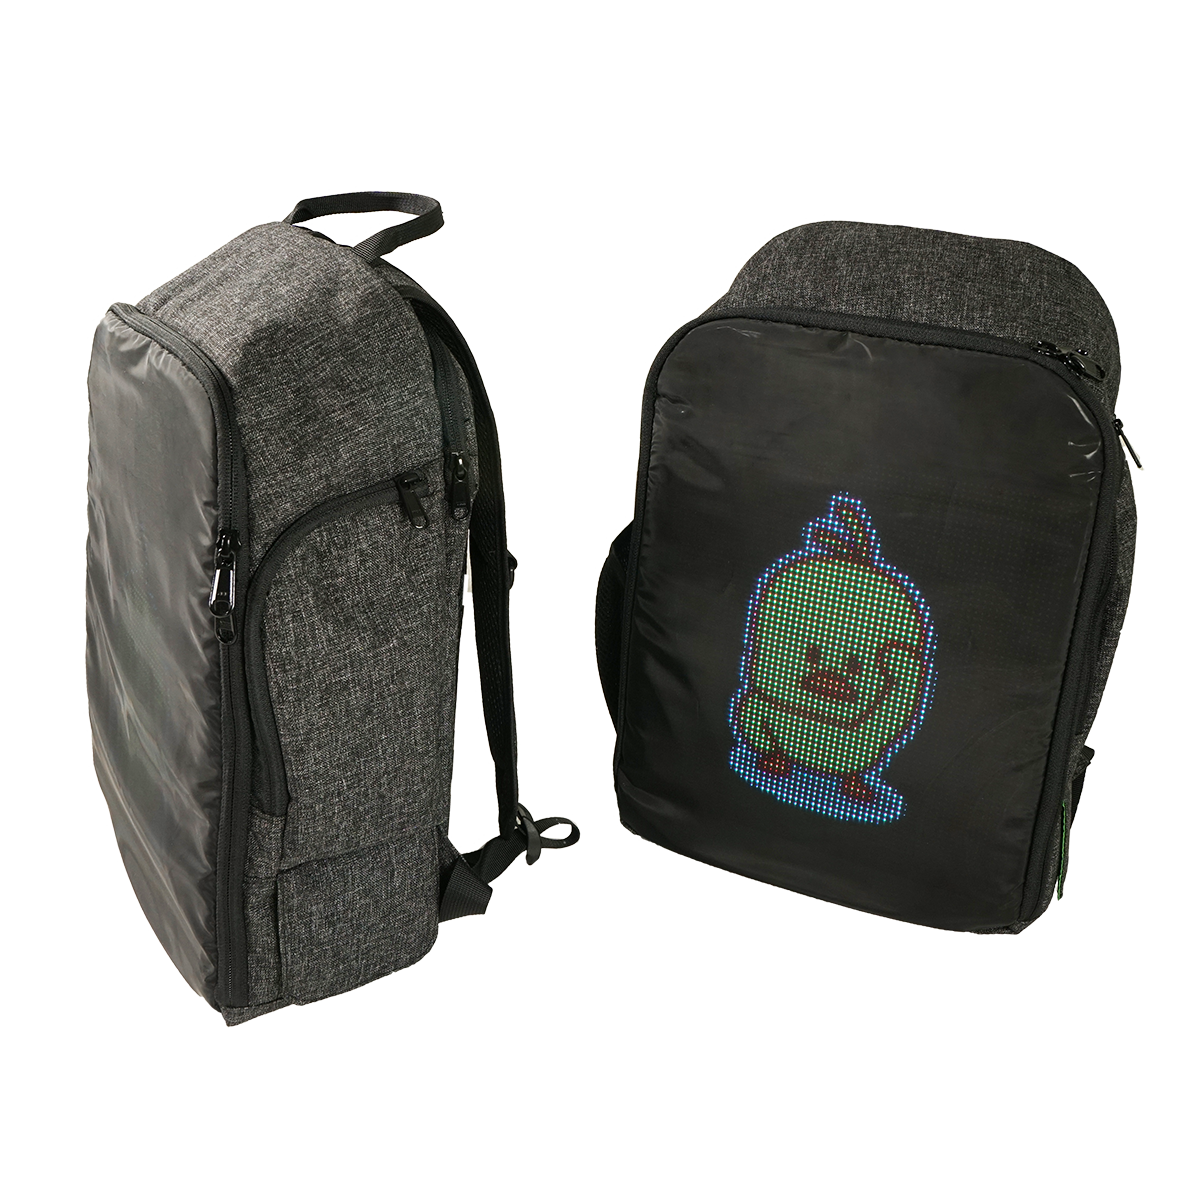 GifPack Customizable LED Backpack